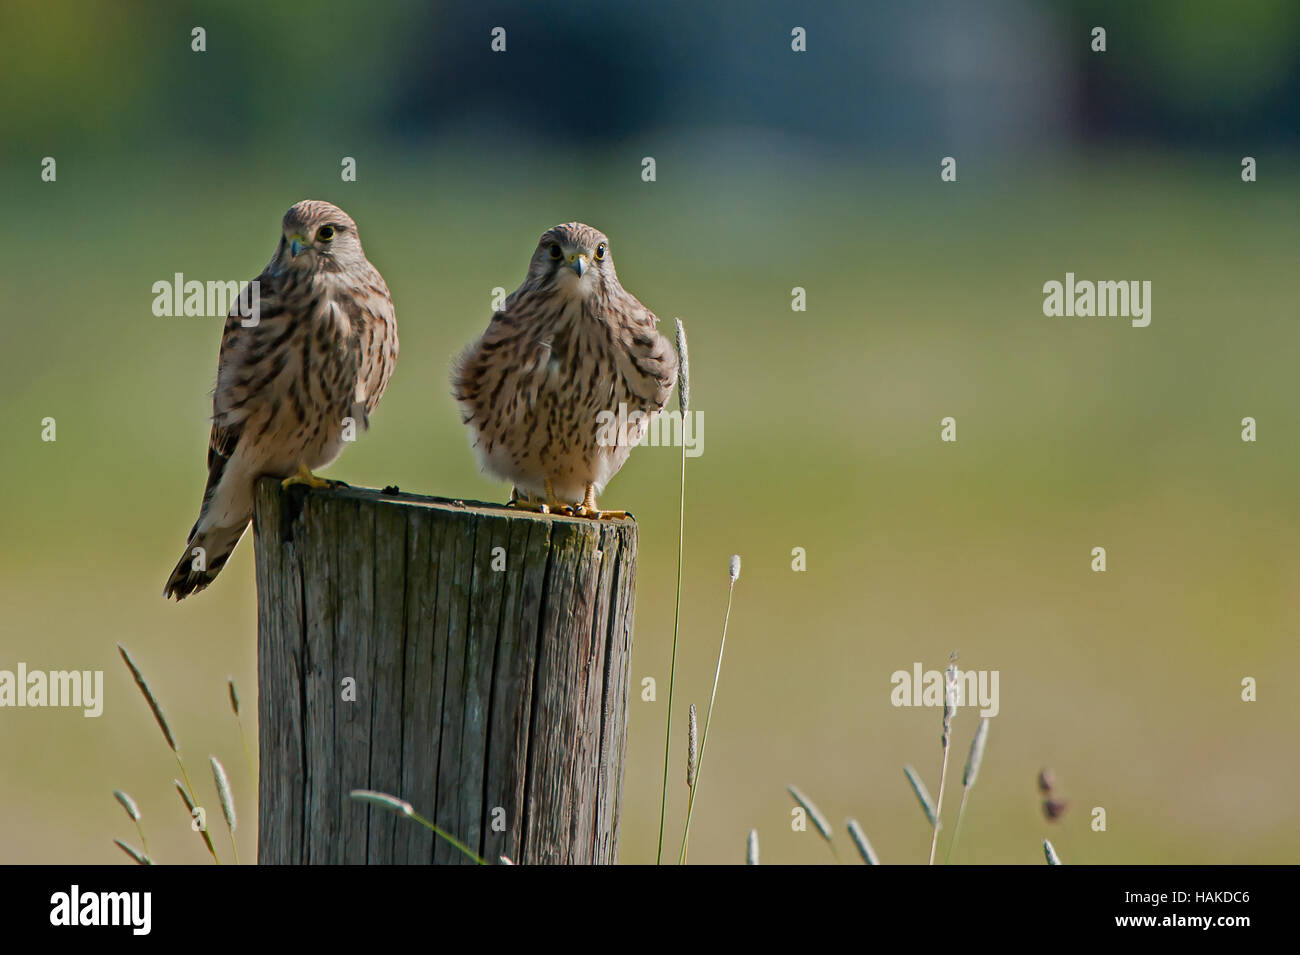 Two juvenile kestrels (Falco tinnunculus) on top of a pole with a green bokeh in the background - Stock Image